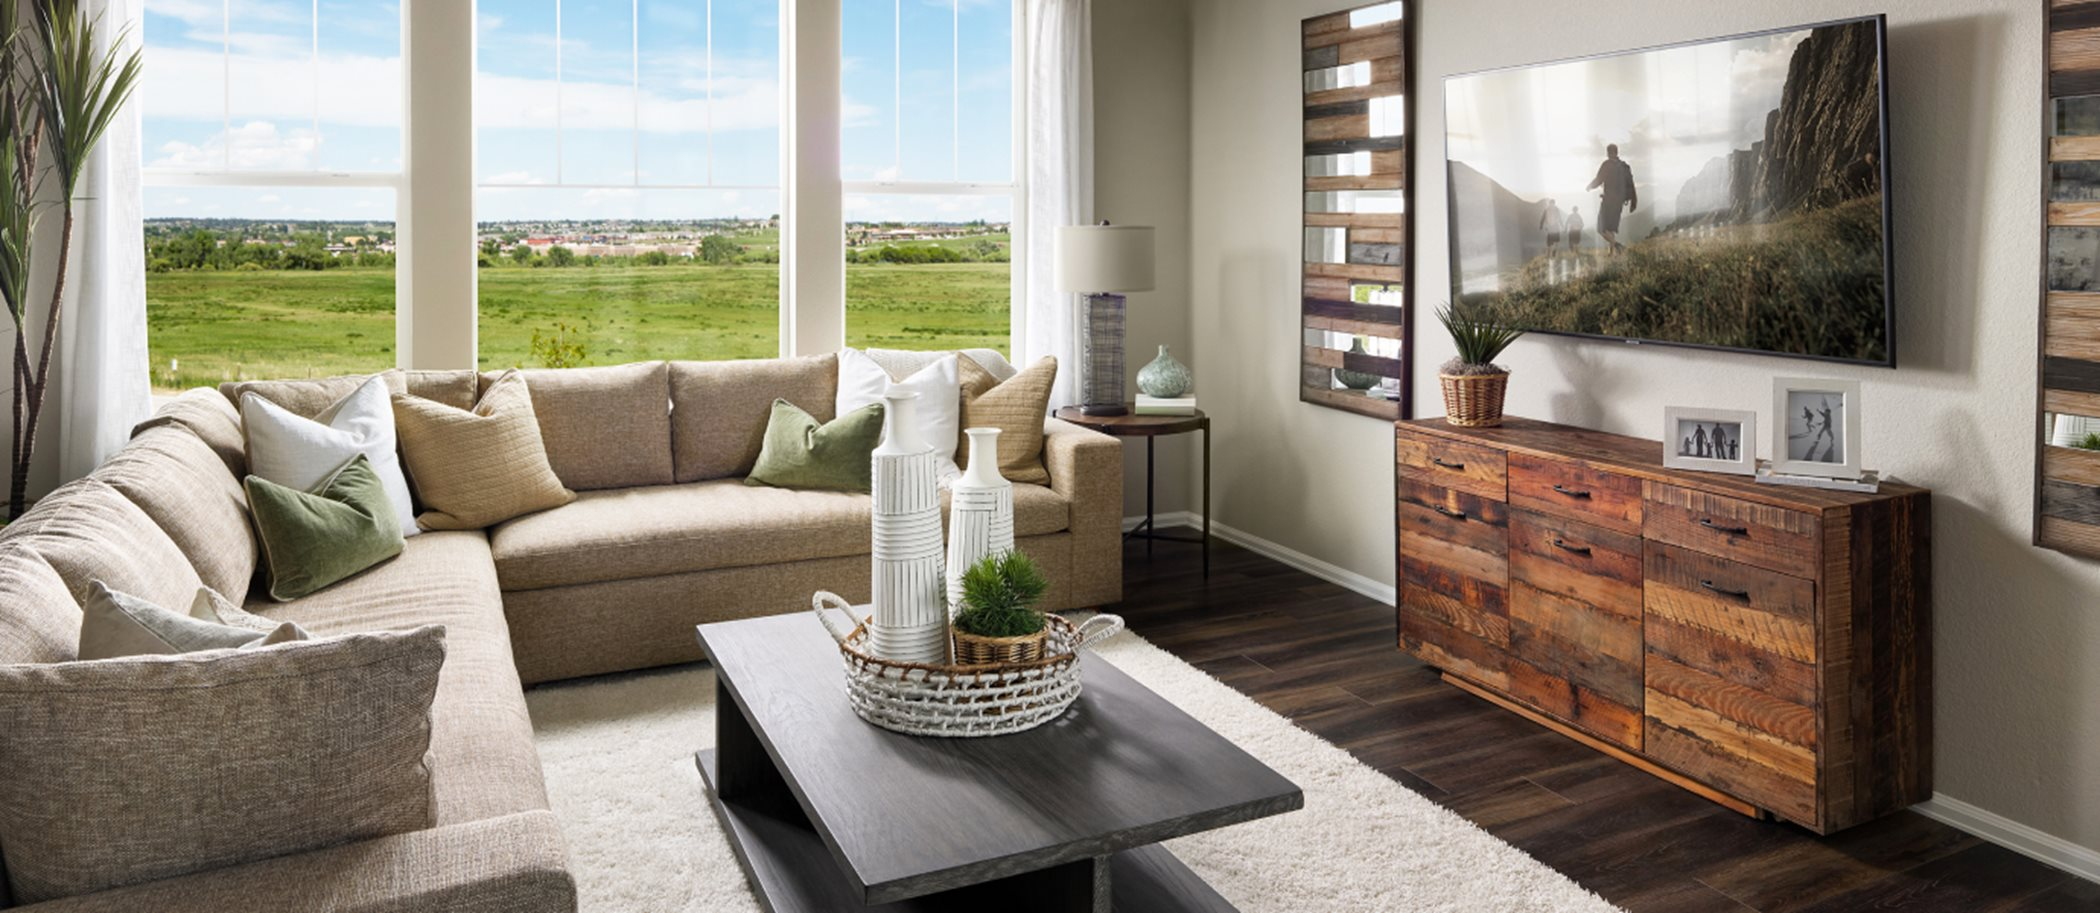 Waterstone The Pioneer Collection Pinnacle Living